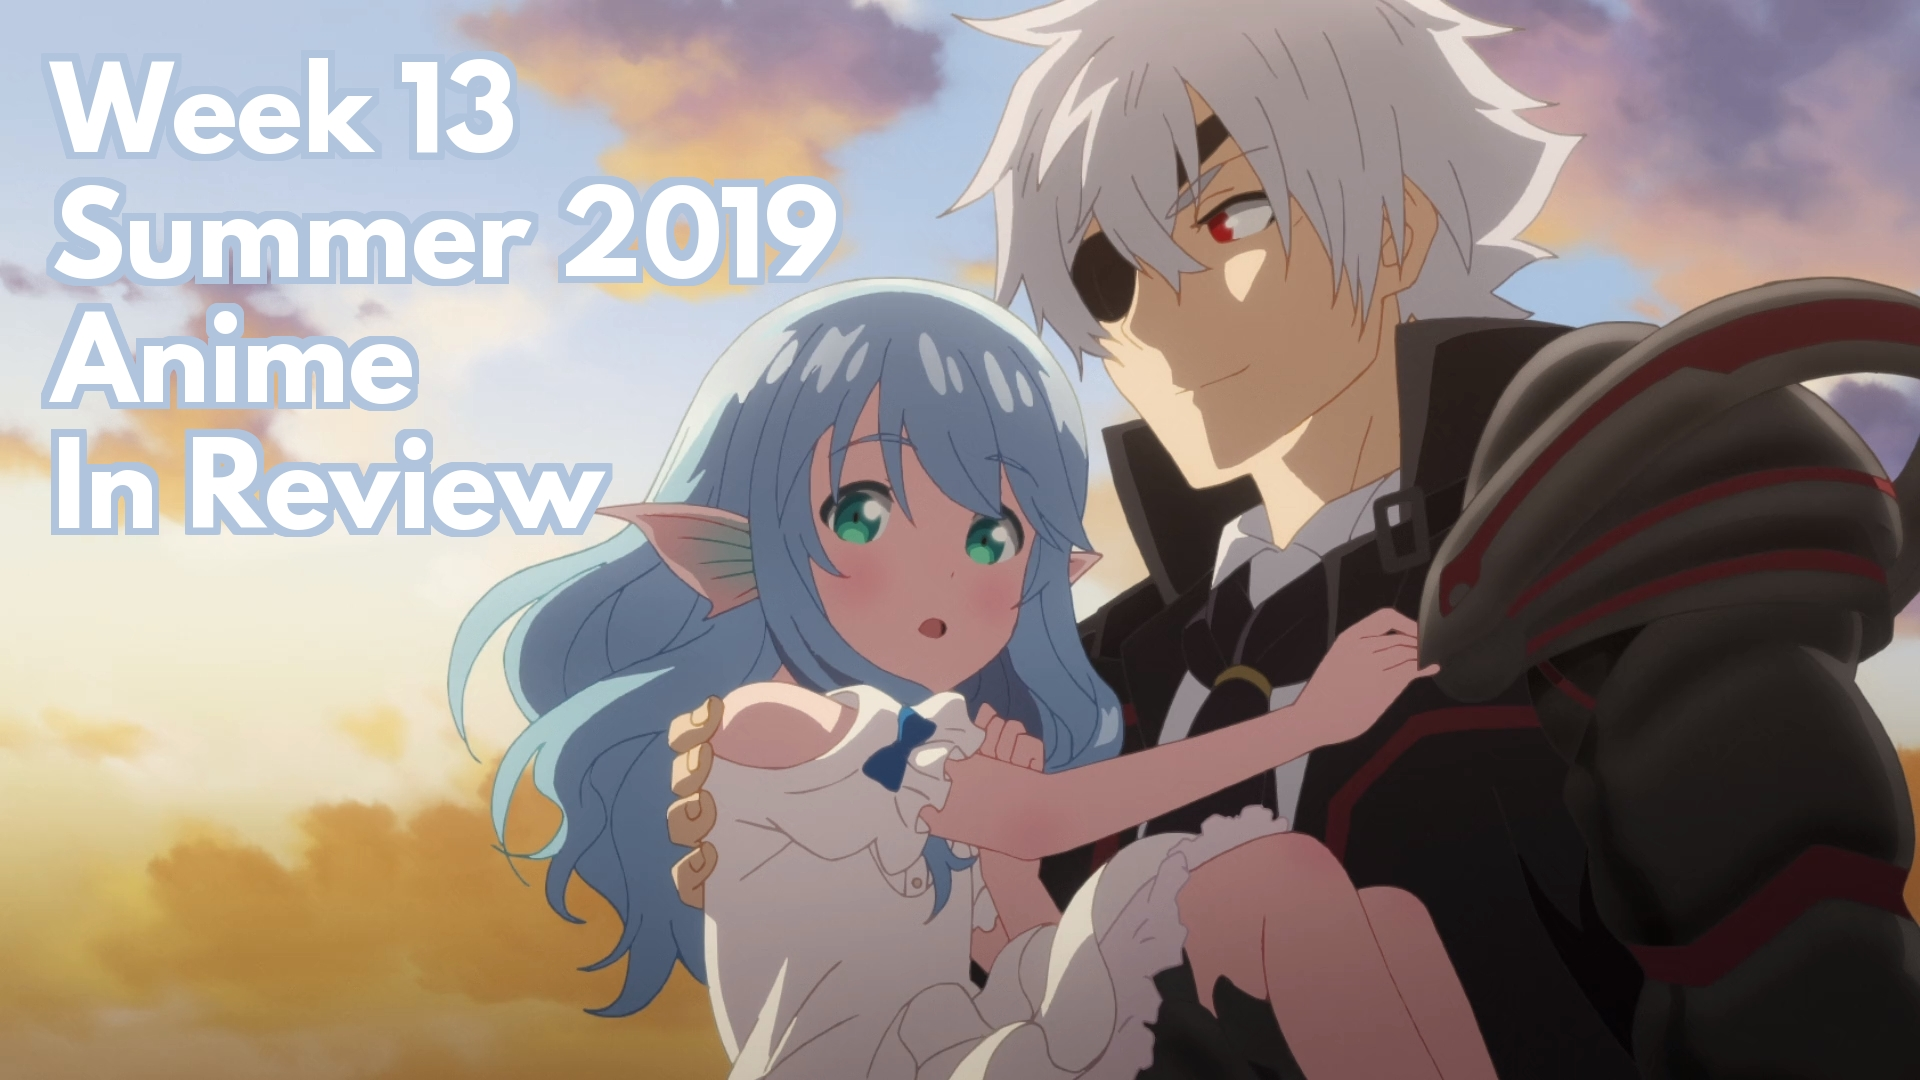 Week 13 of Summer 2019 Anime In Review